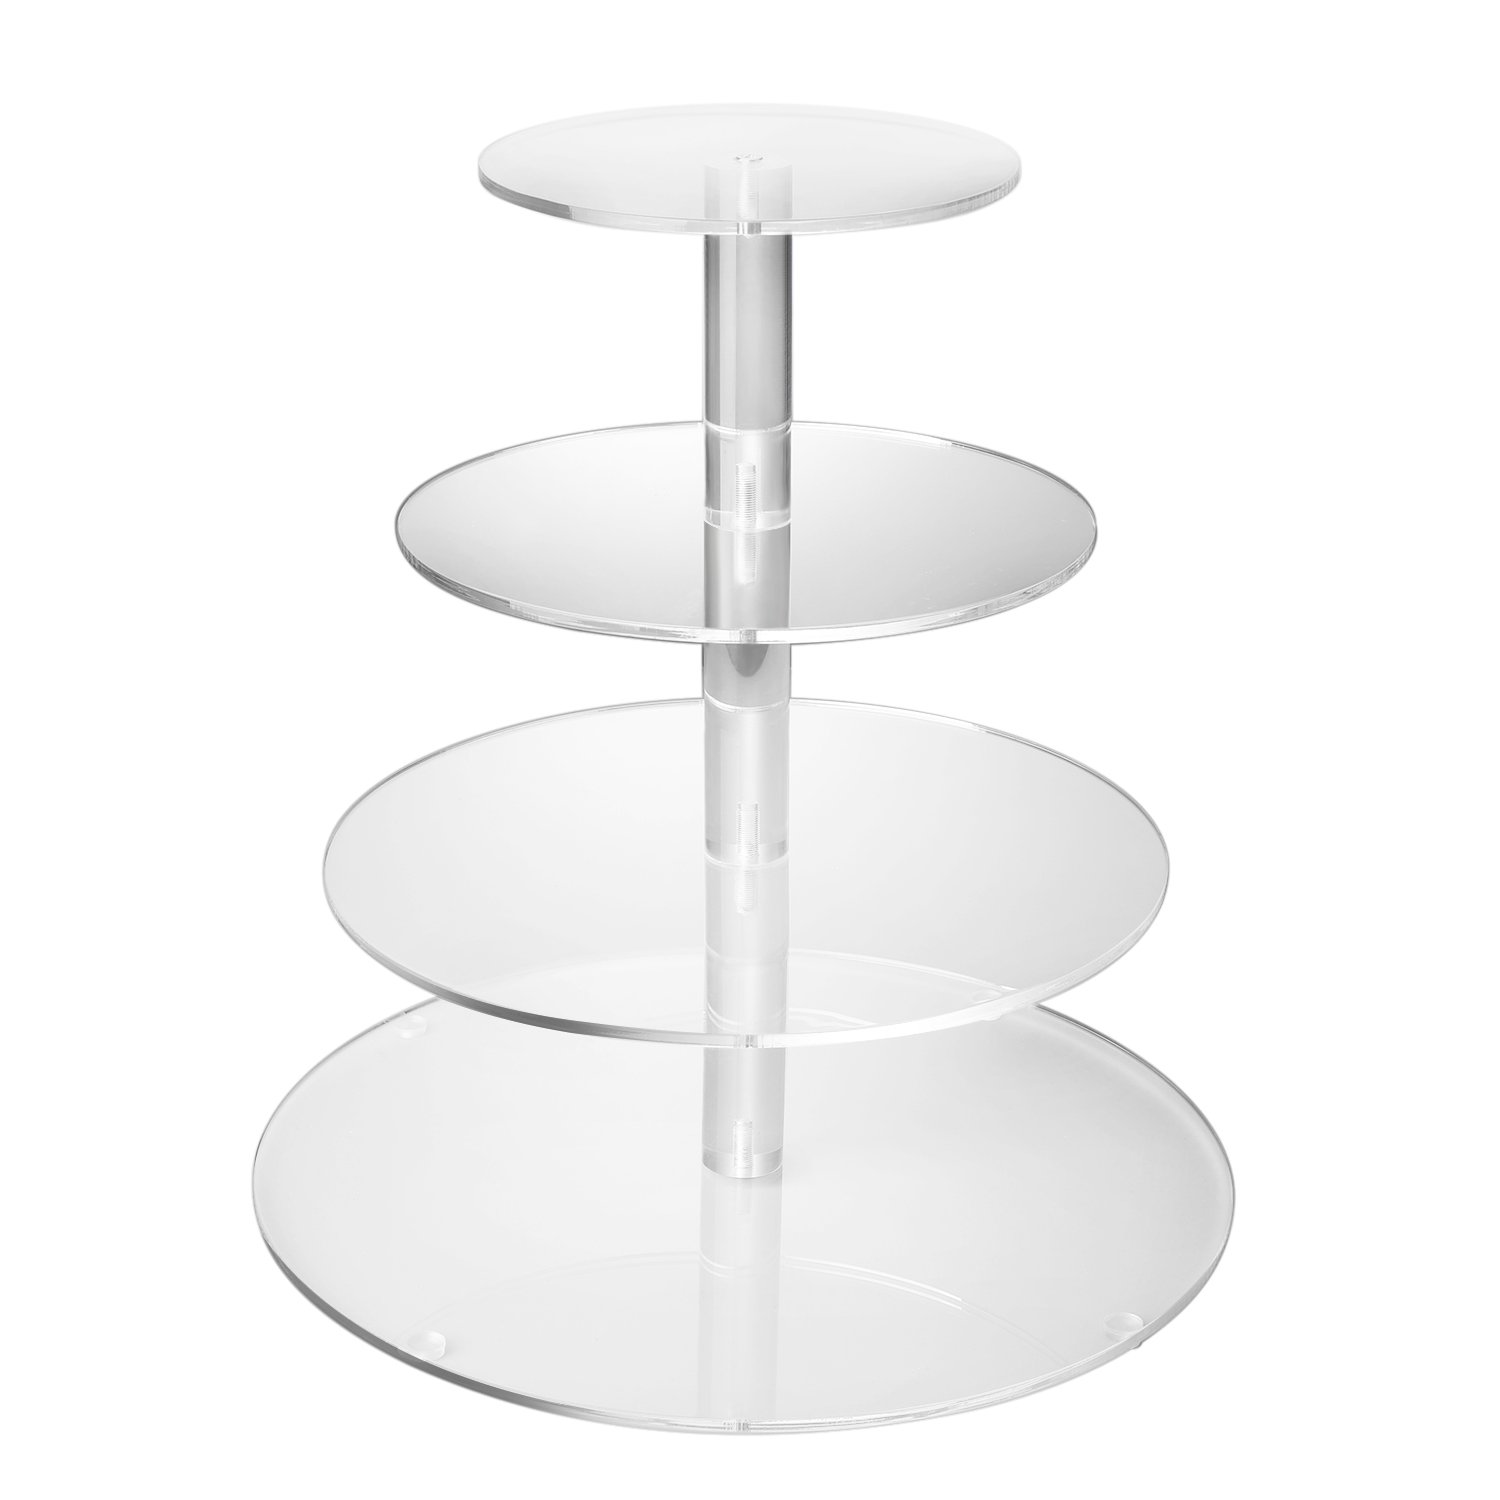 Flexzion 4 Tier Cupcake Stand Holder Tower - Wedding Birthday Party Plastic Cupcake Display Tree for Baby Family Afternoon Dessert - Tiered Acrylic Glass Cake Carrier w/Top Tier (4 Tier Clear, Round)